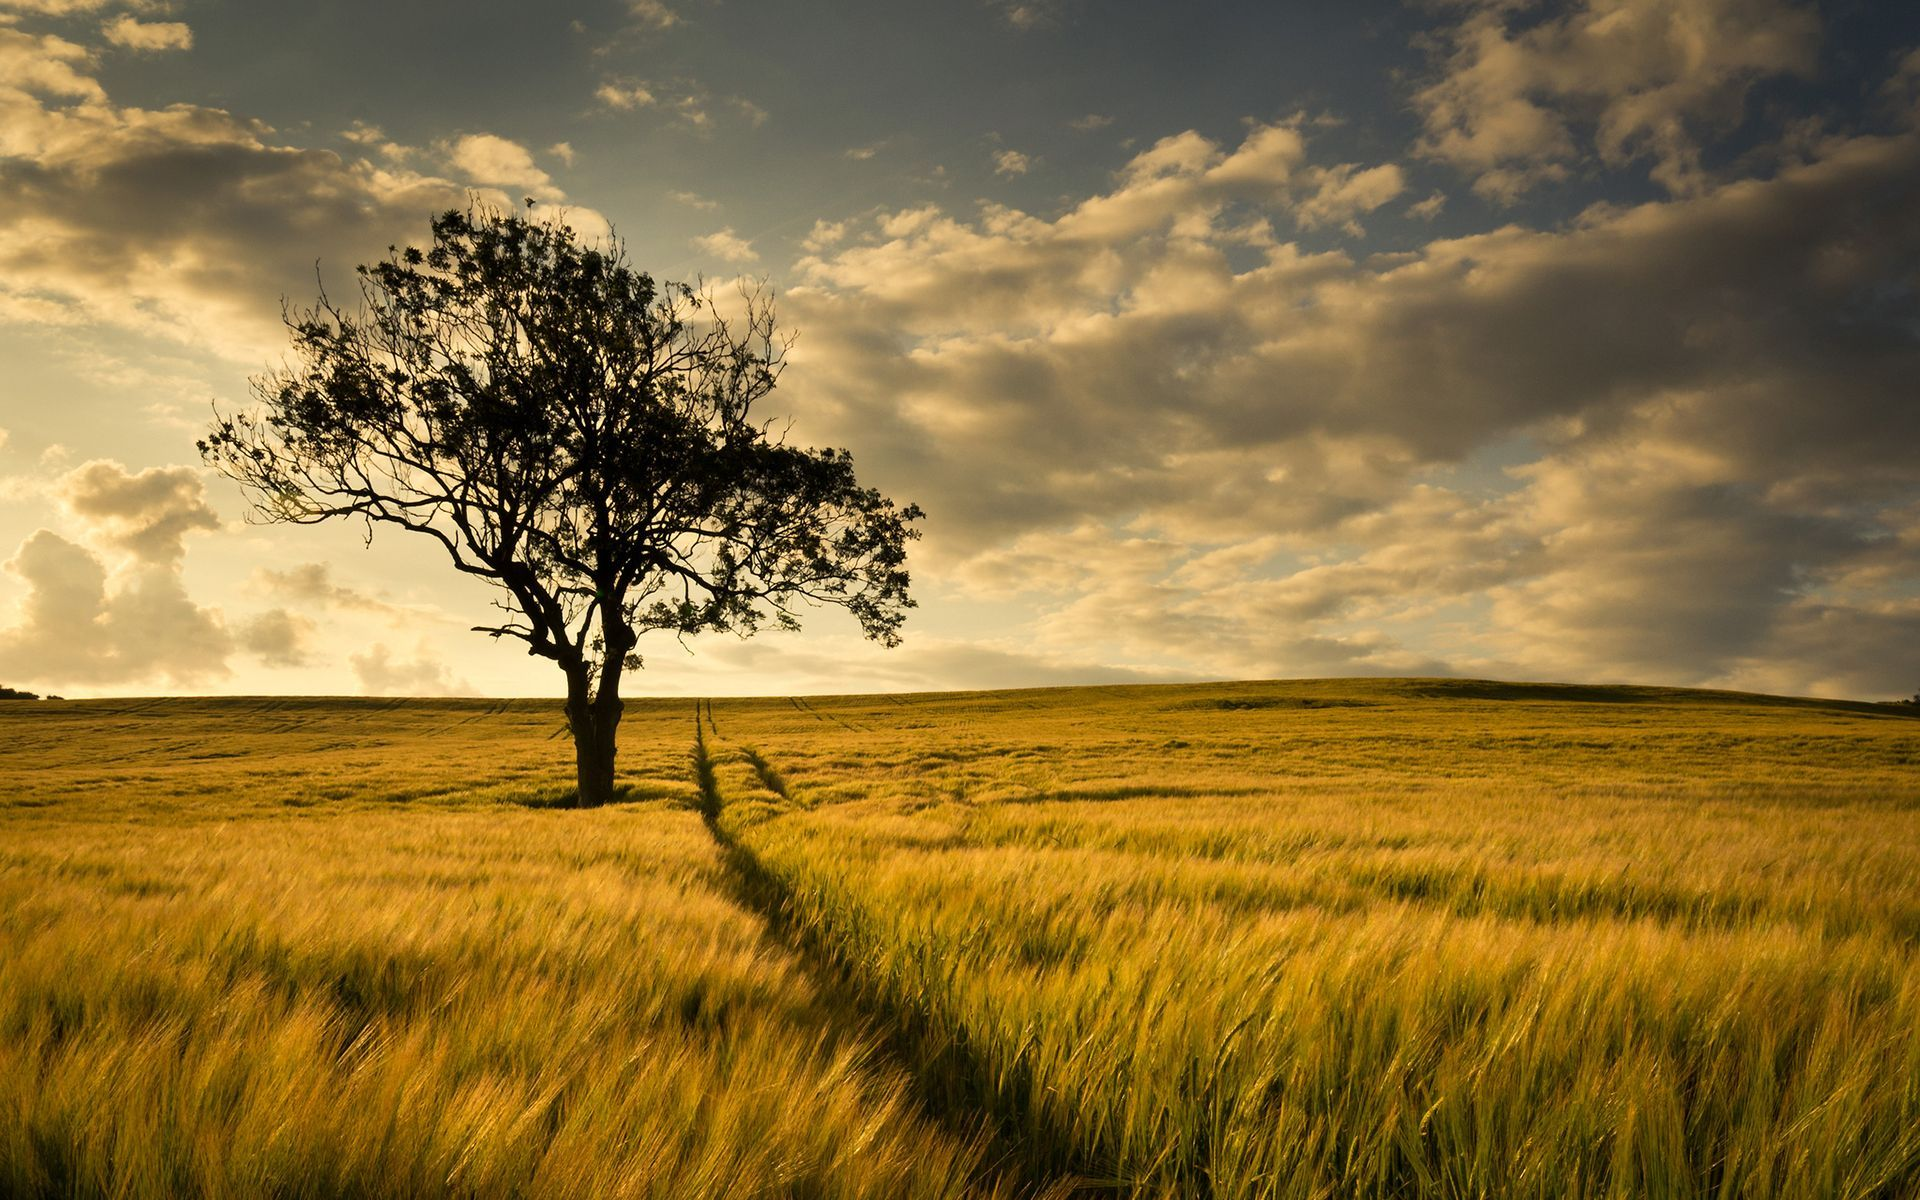 Tree in the golden field hd wallpaper hd latest wallpapers for Landscape trees